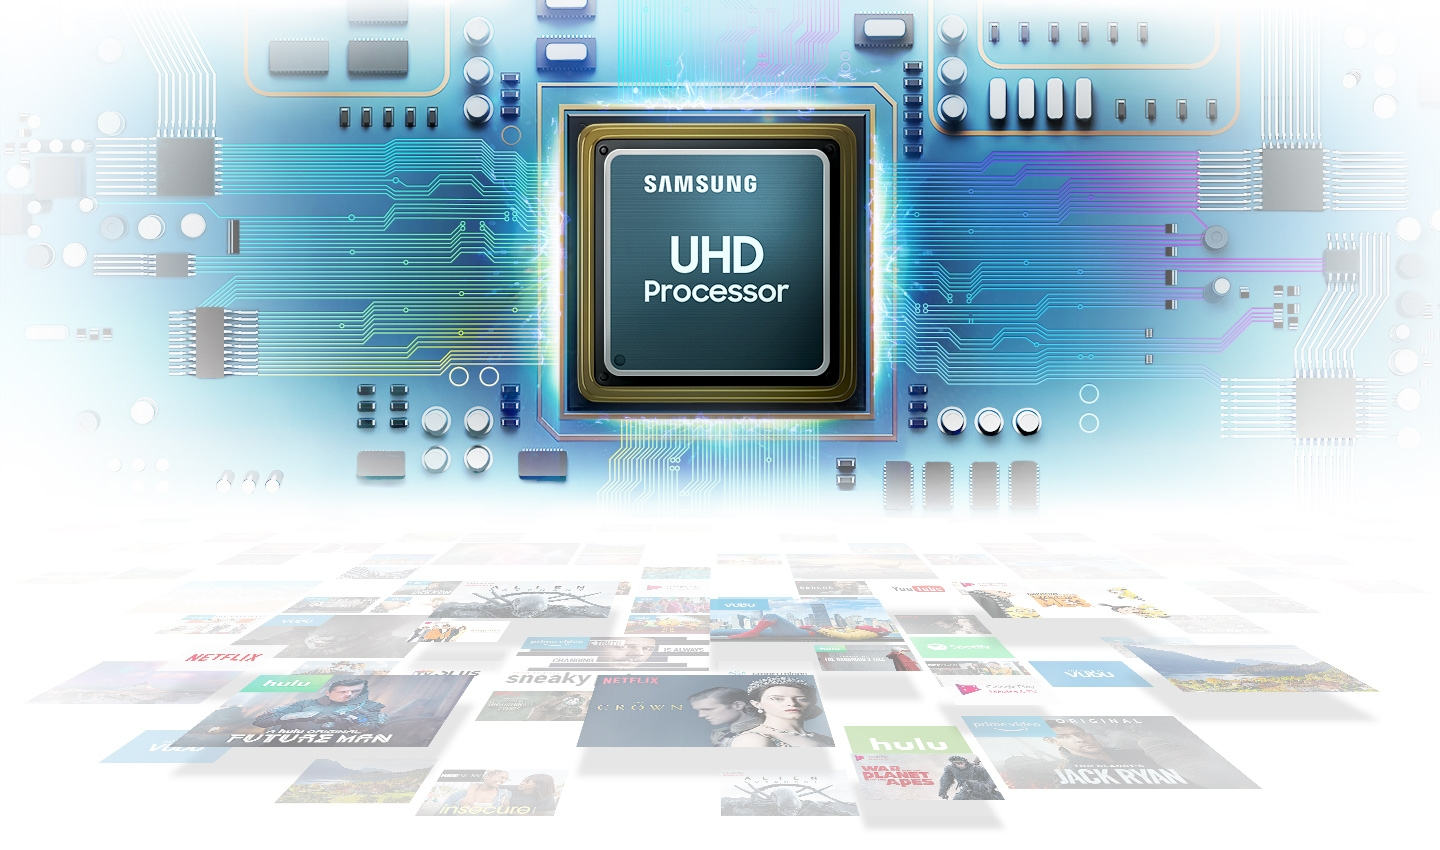 UHD Processor,powerful picture quality